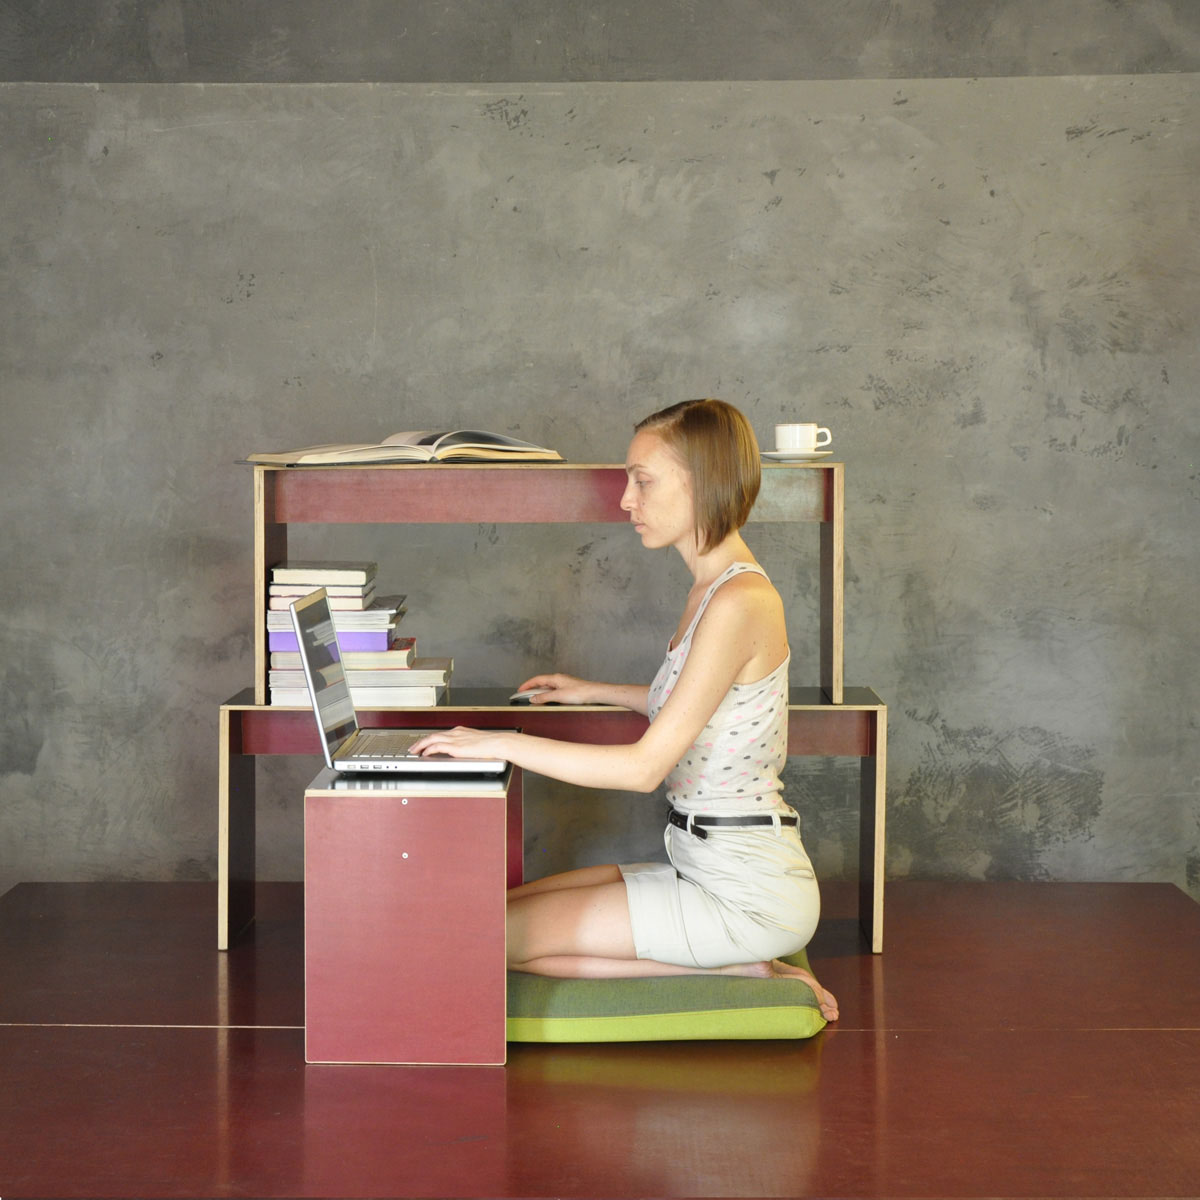 Freydenberg_Modular_Bench_Table_Trip_16.jpg